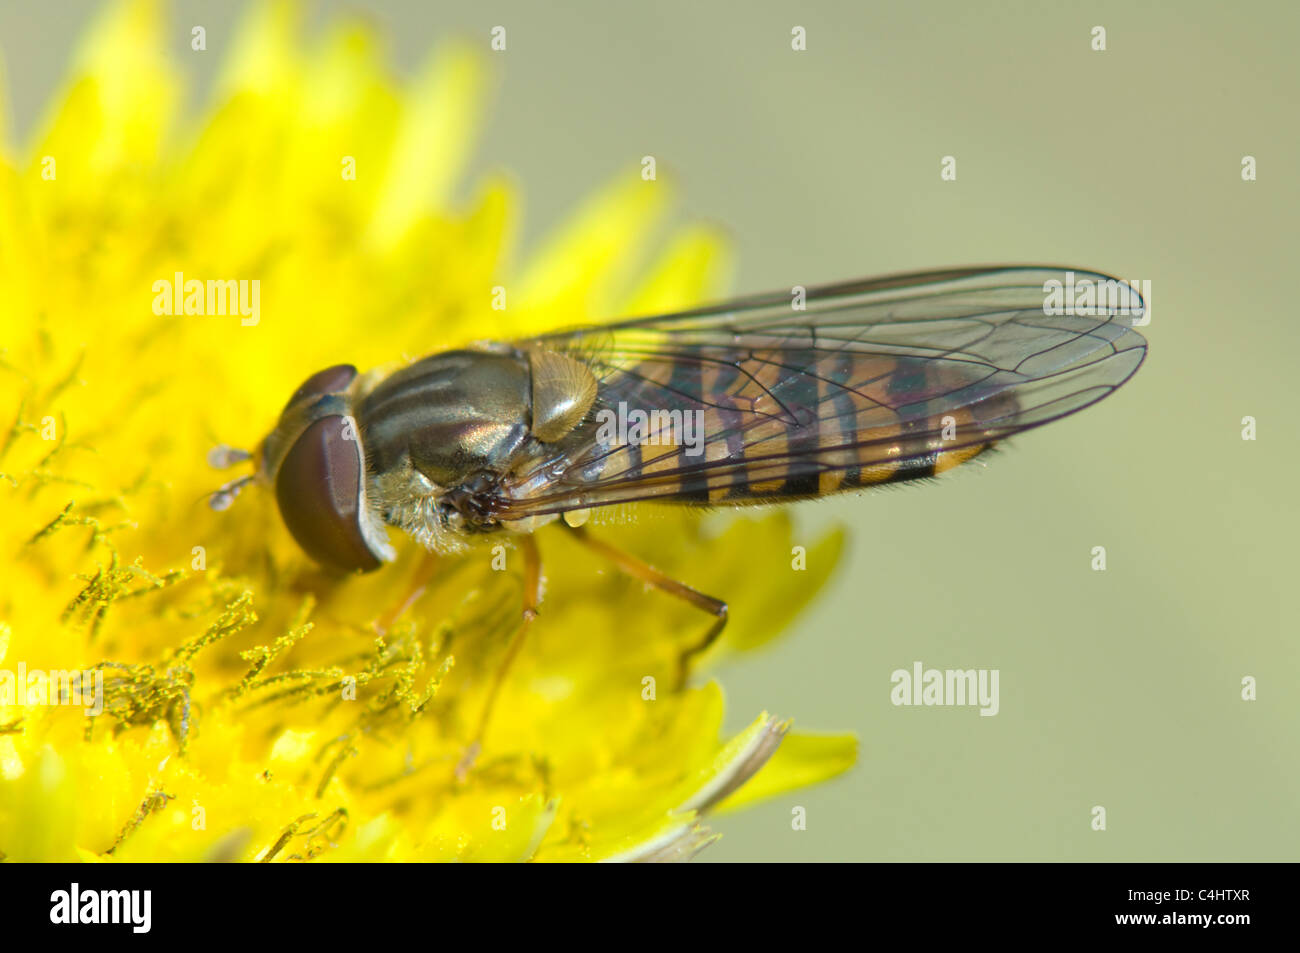 Hover-fly (Episyrphus balteatus), France - Stock Image